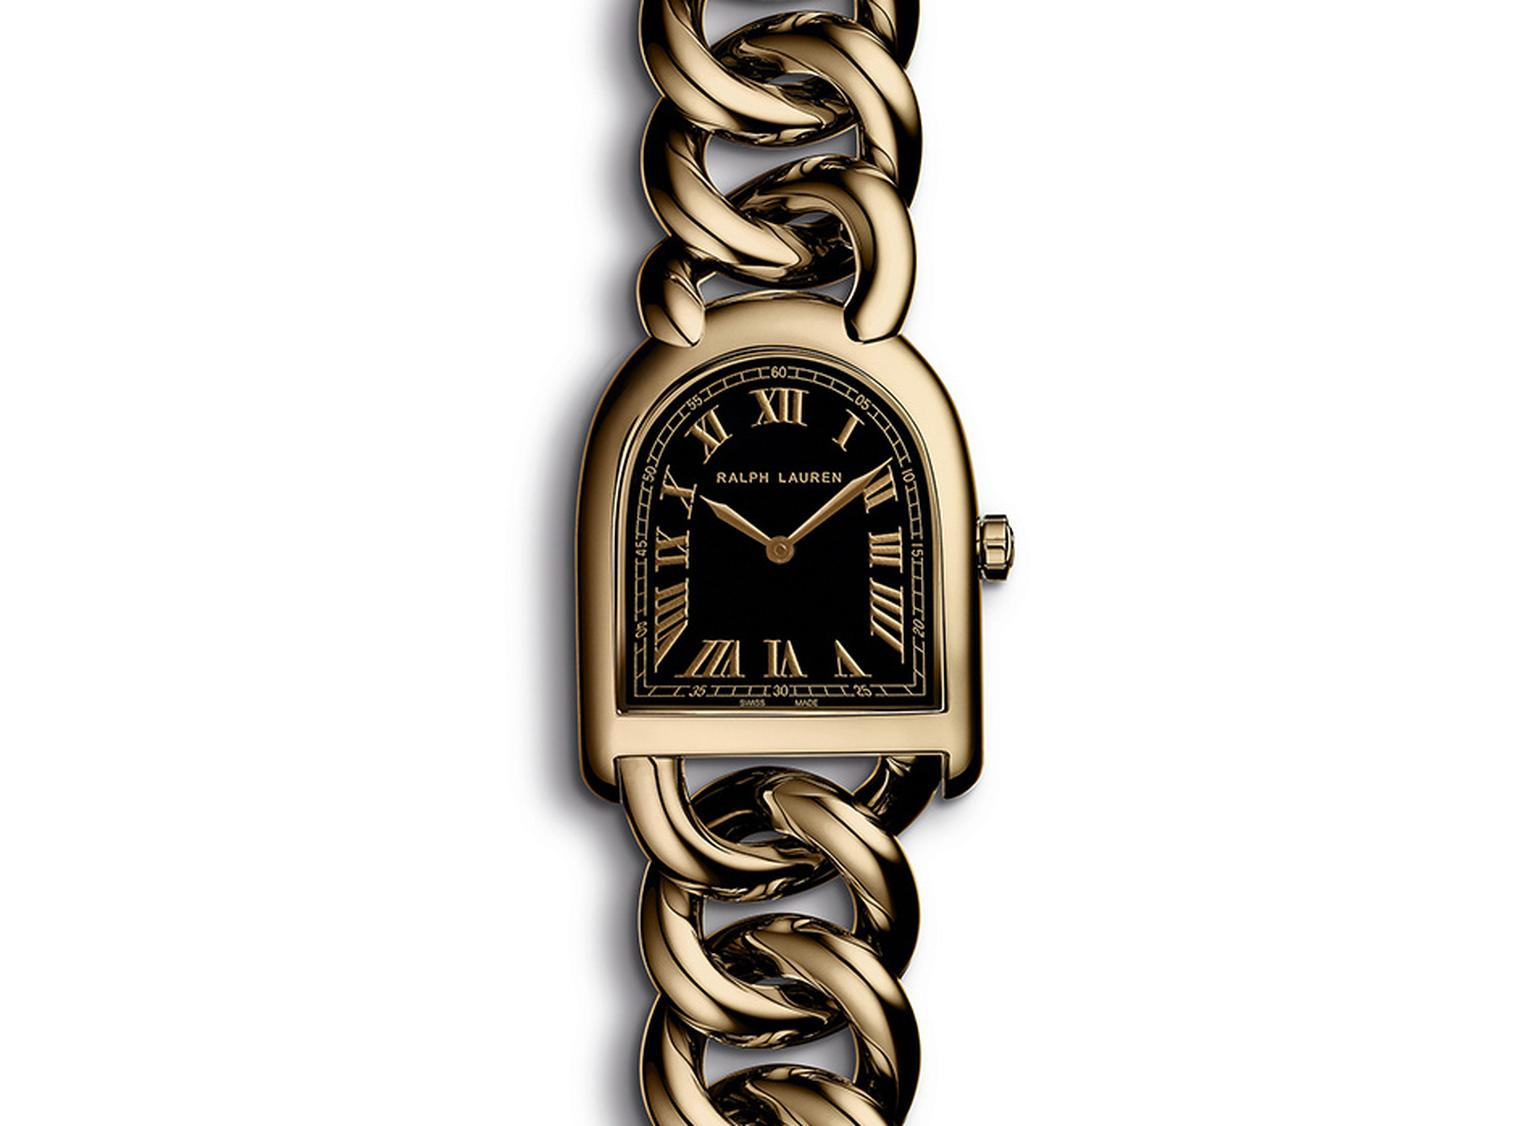 Ralph Lauren Petite-Link Stirrup watch in rose gold, with a black lacquered dial